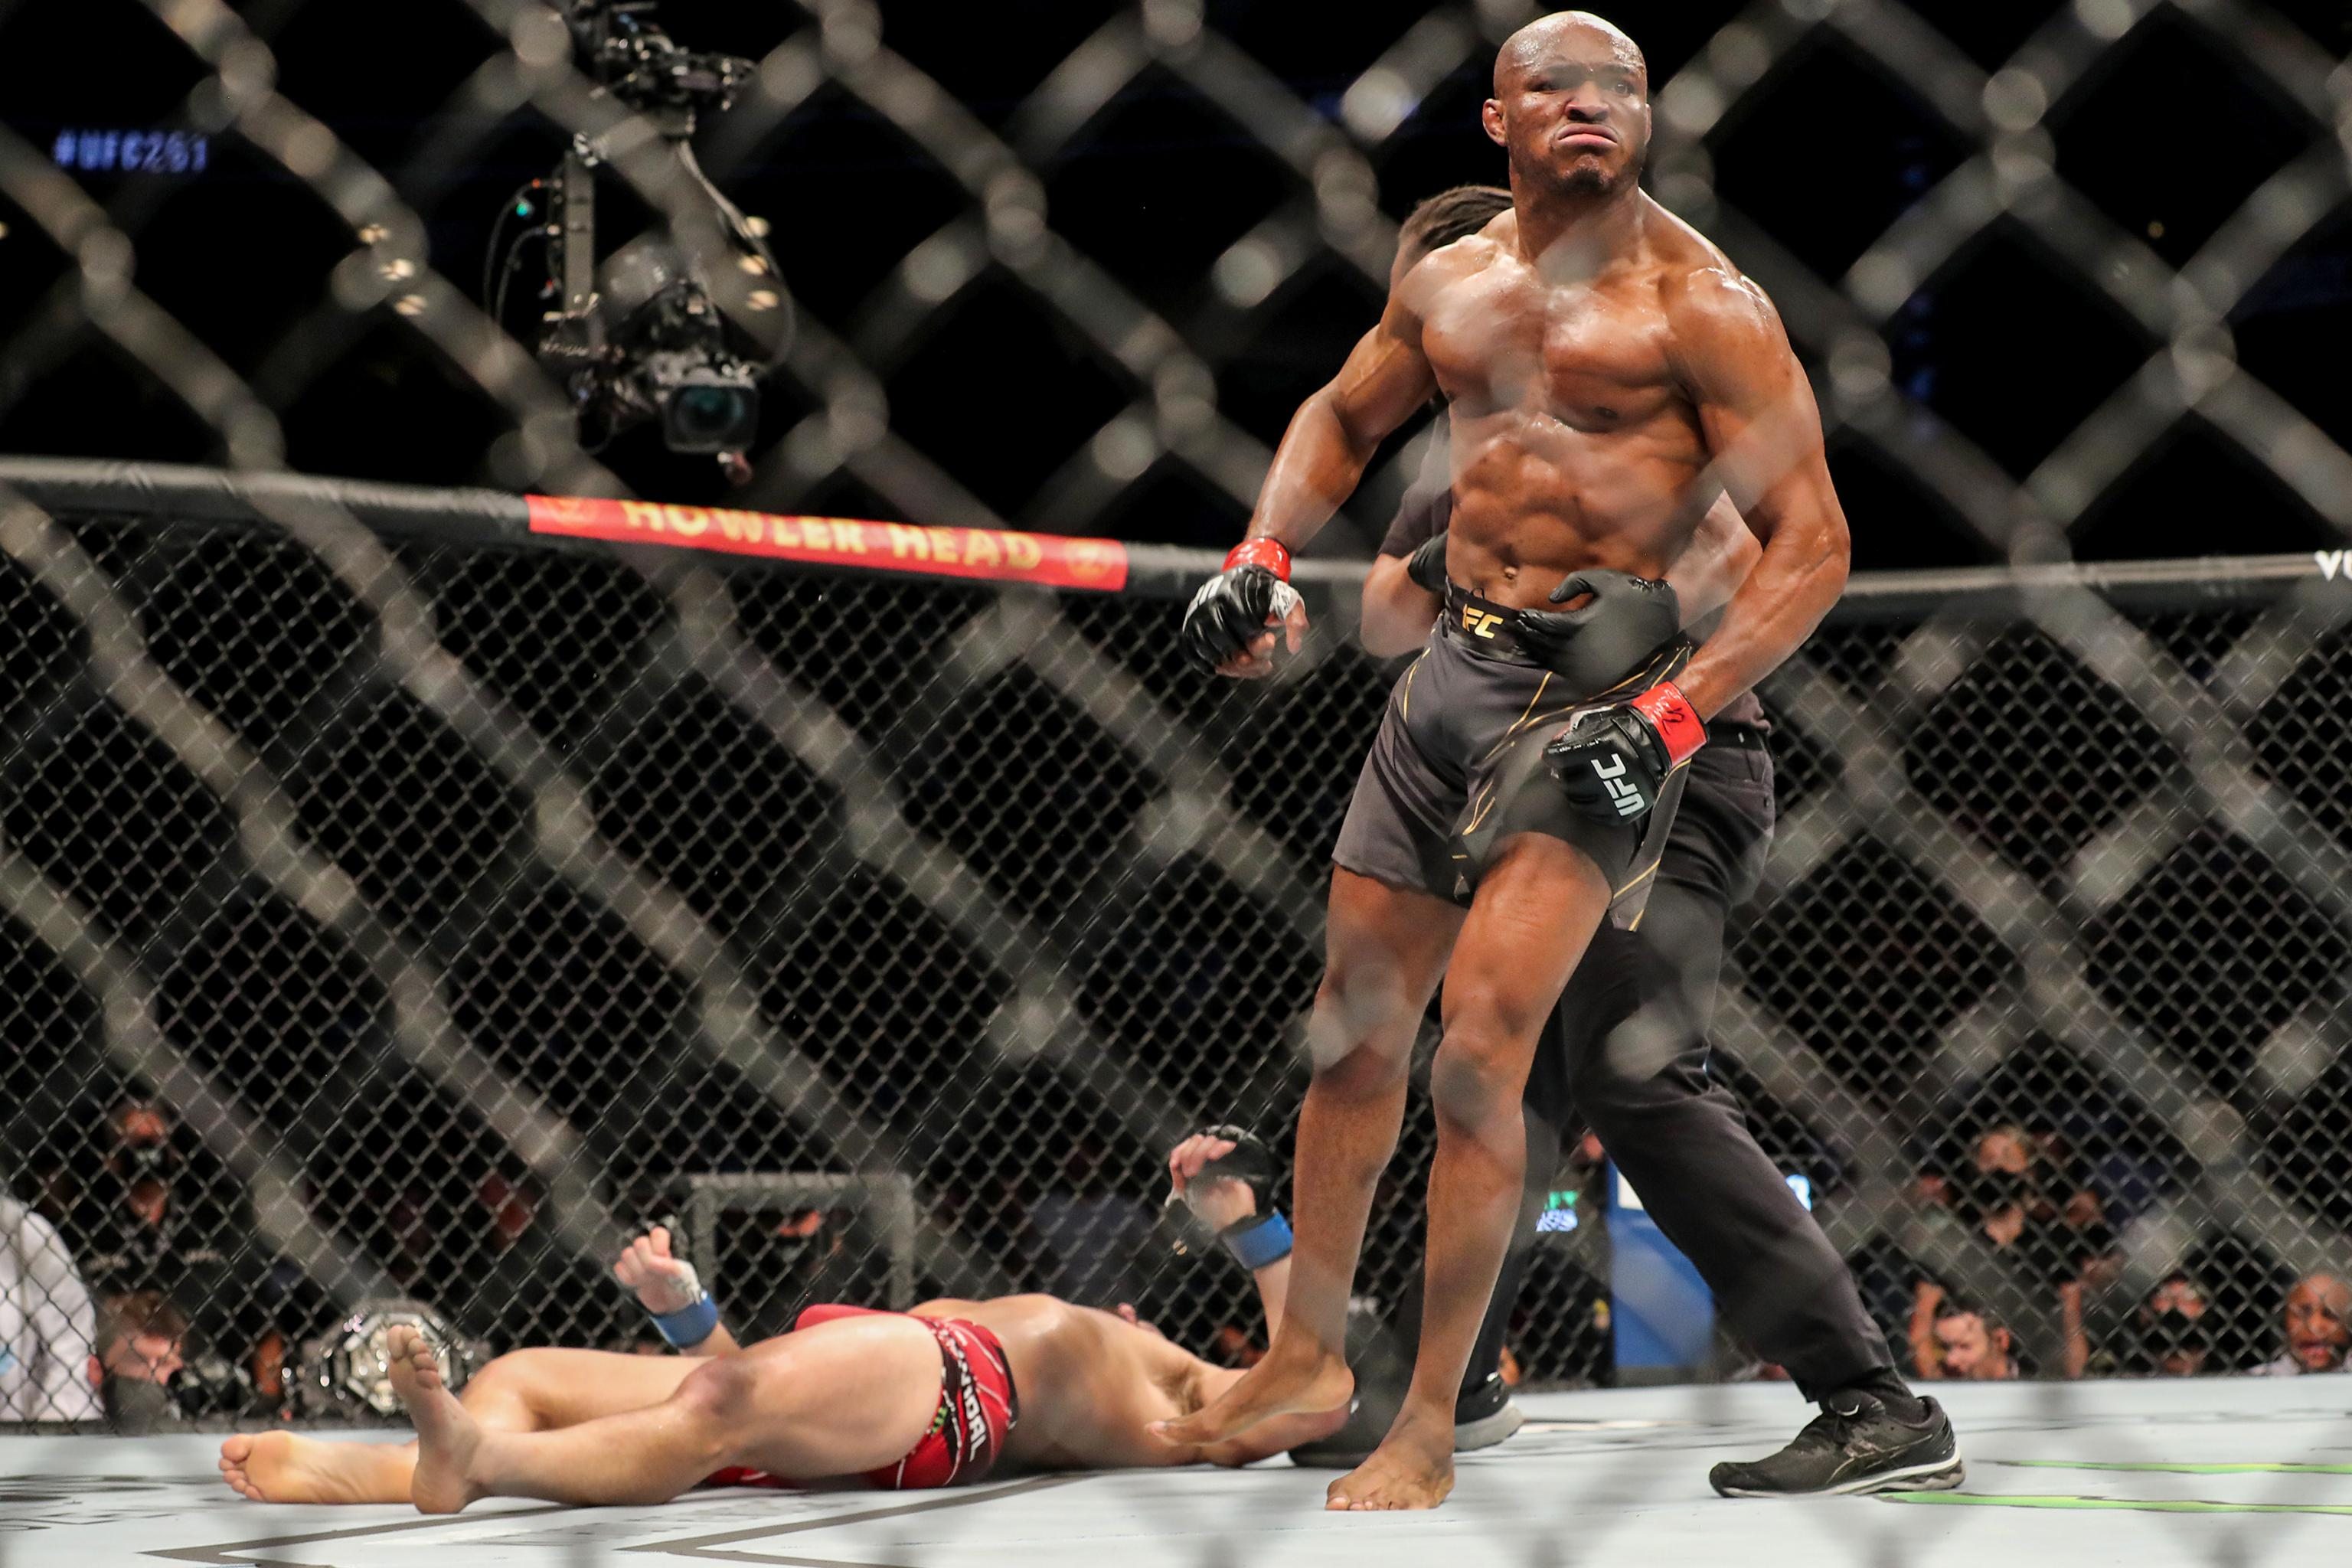 Kamaru Usman Has No Peer and Is Now Chasing GSP After Spectacular UFC 261  Win | Bleacher Report | Latest News, Videos and Highlights